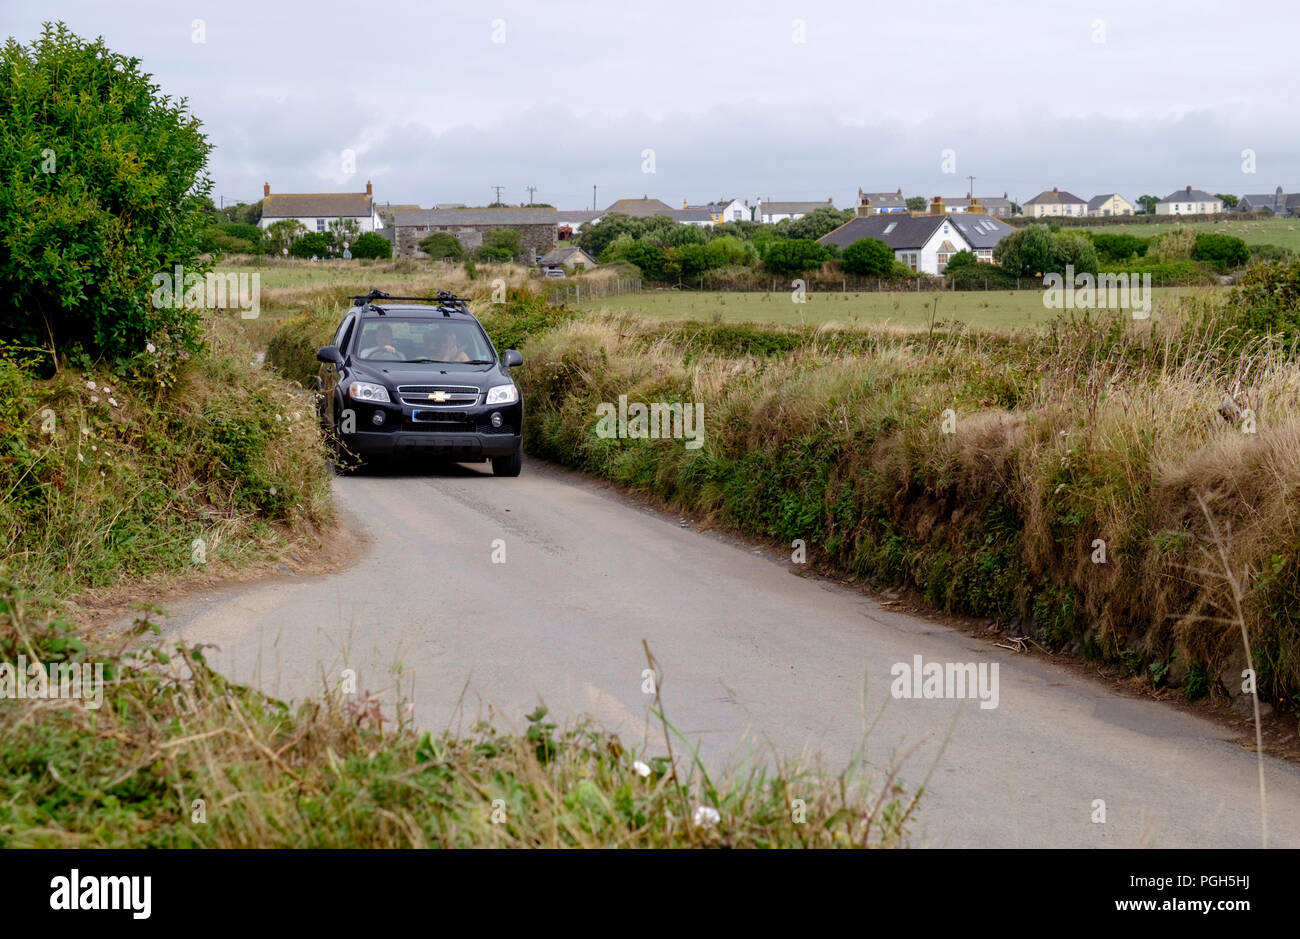 Traffic congestion in cornwall. Renowned for its narrow lanes with passing places cornwall can be a challenge for the motorist. - Stock Image